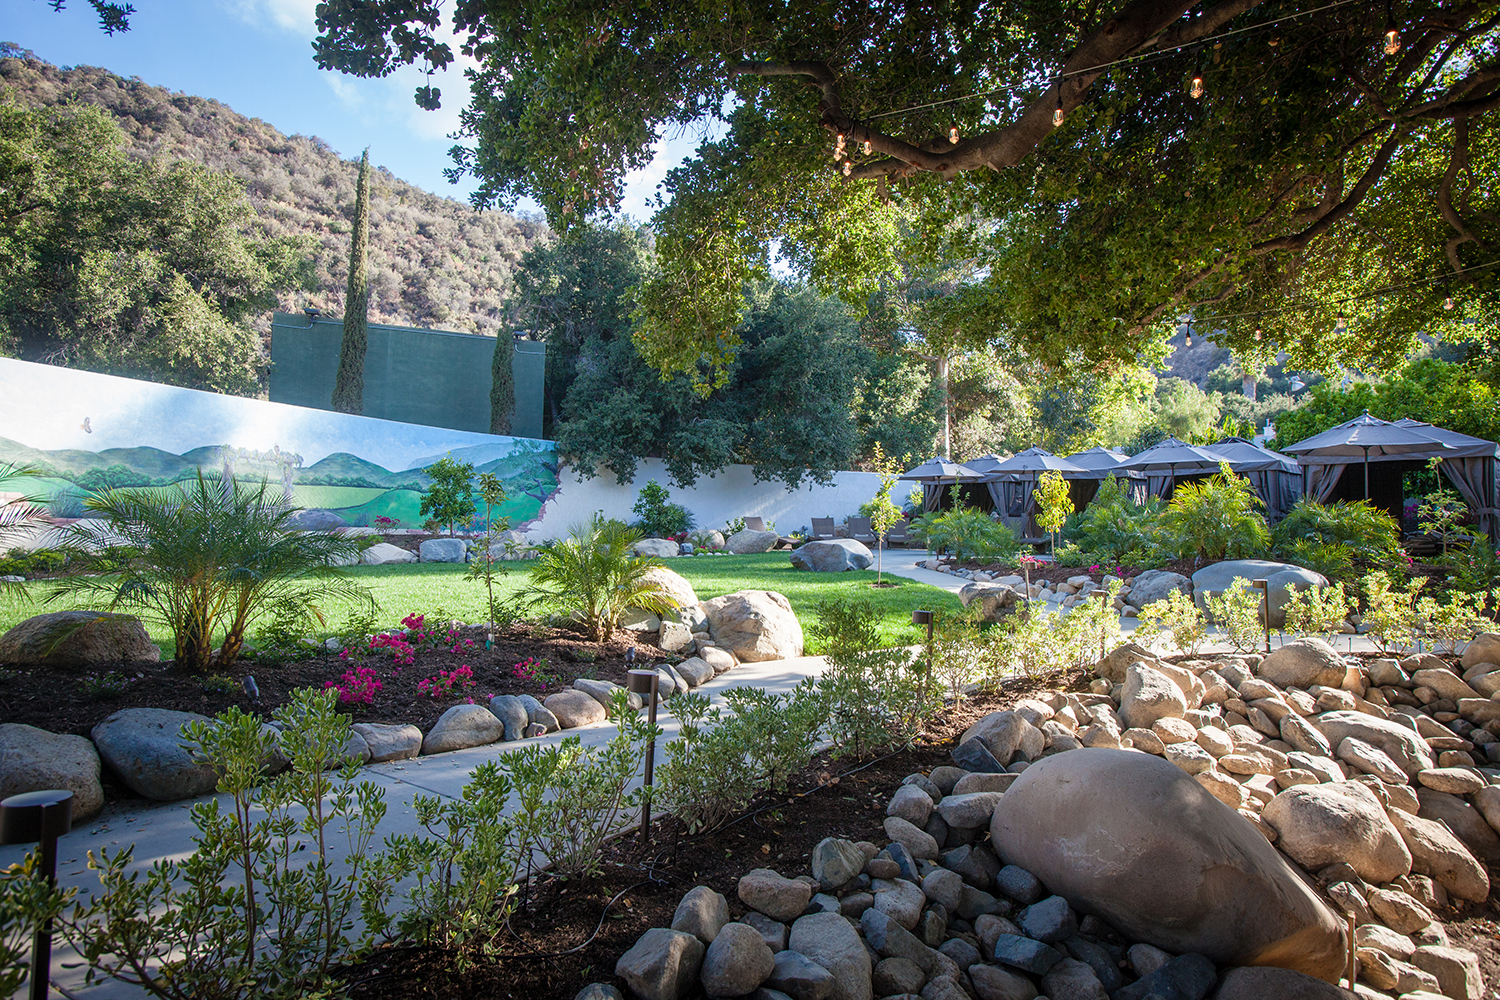 Glen Ivy Hot Springs' new Secret Garden offers the perfect place for relaxation.